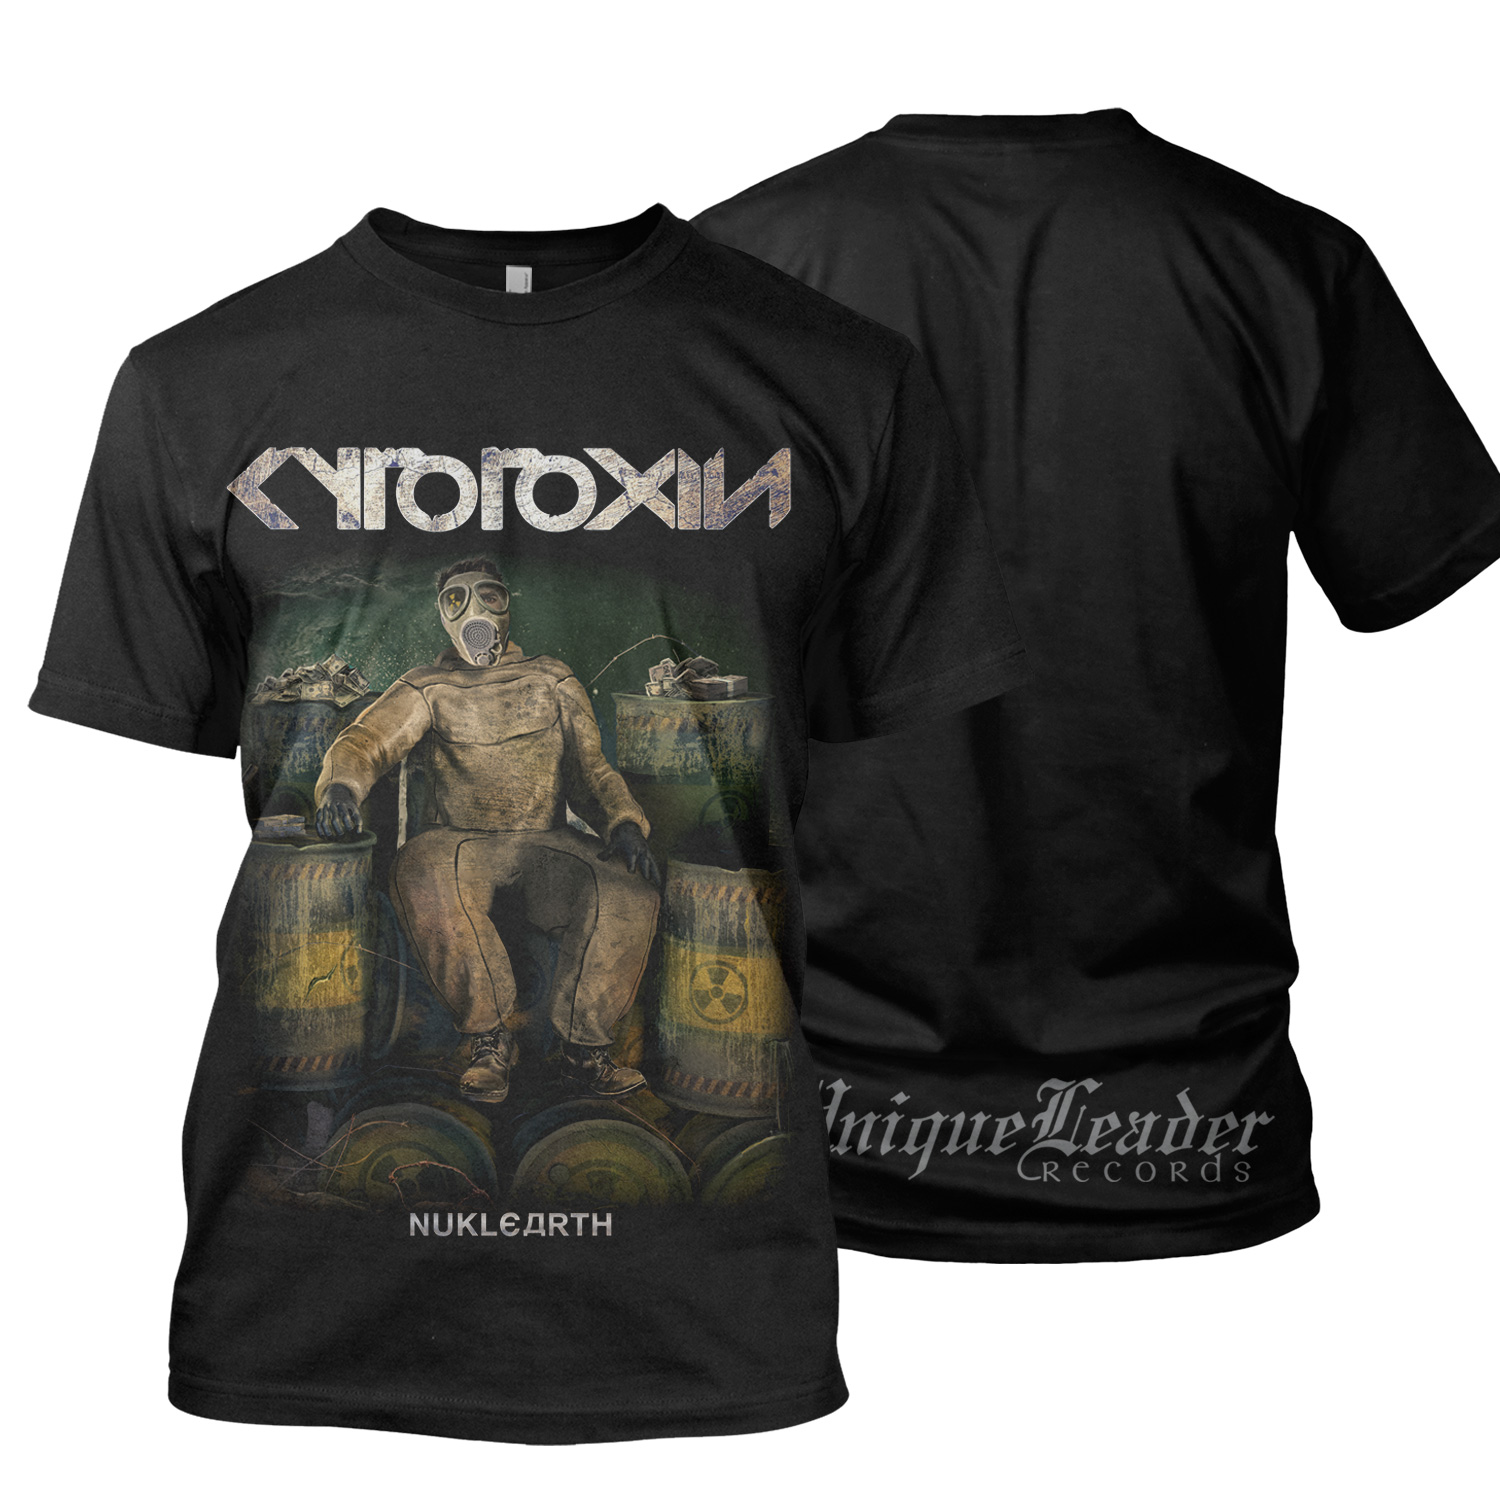 Nuklearth Deluxe CD + Tee Bundle